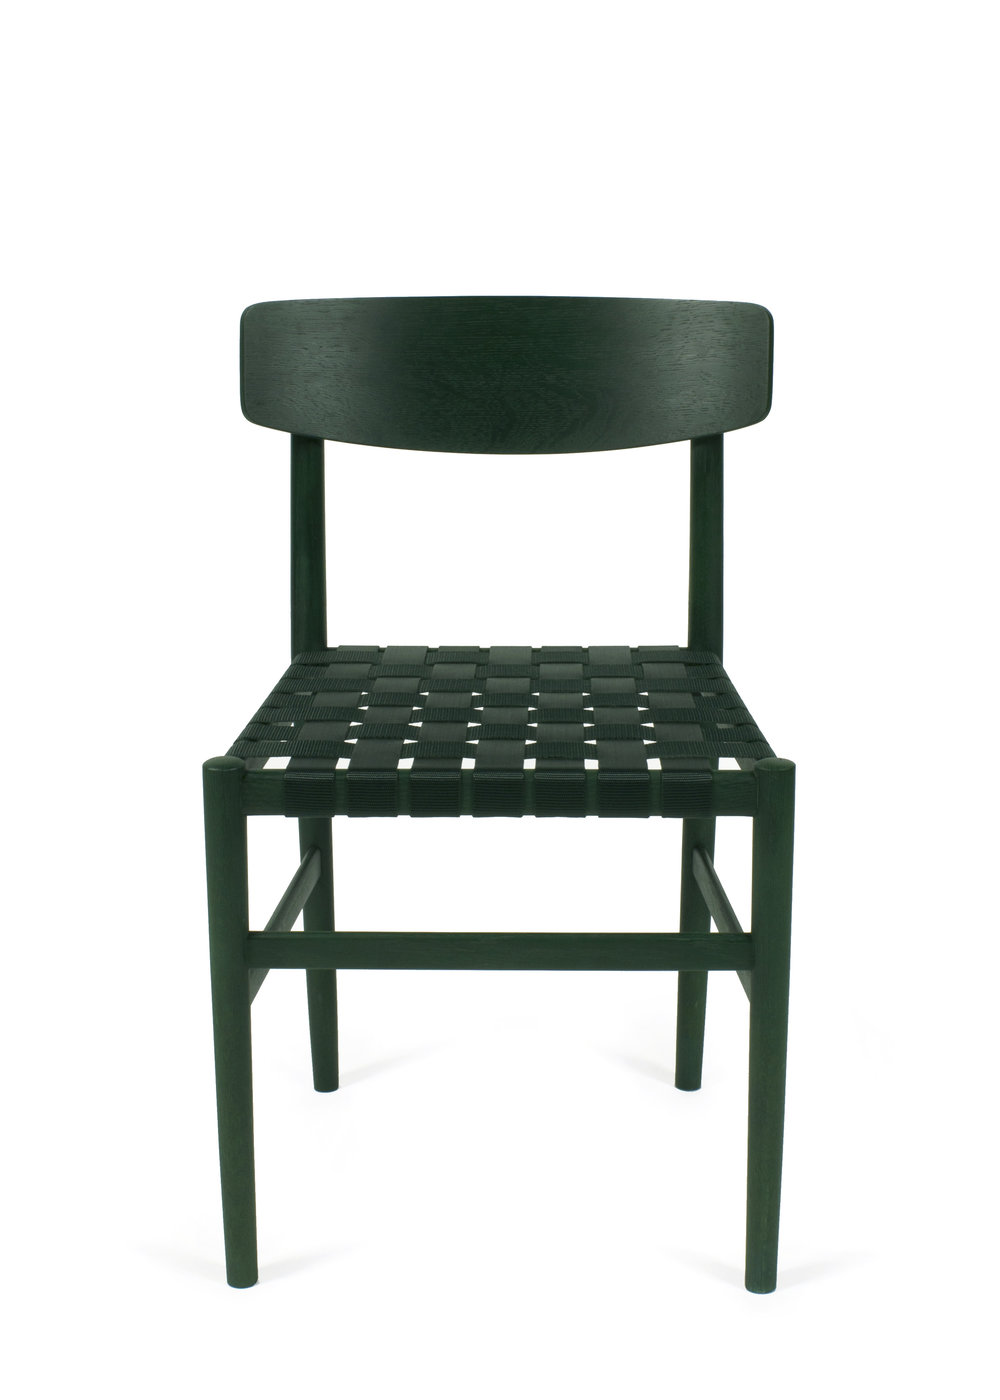 Green_chair_front_less shadow.jpg